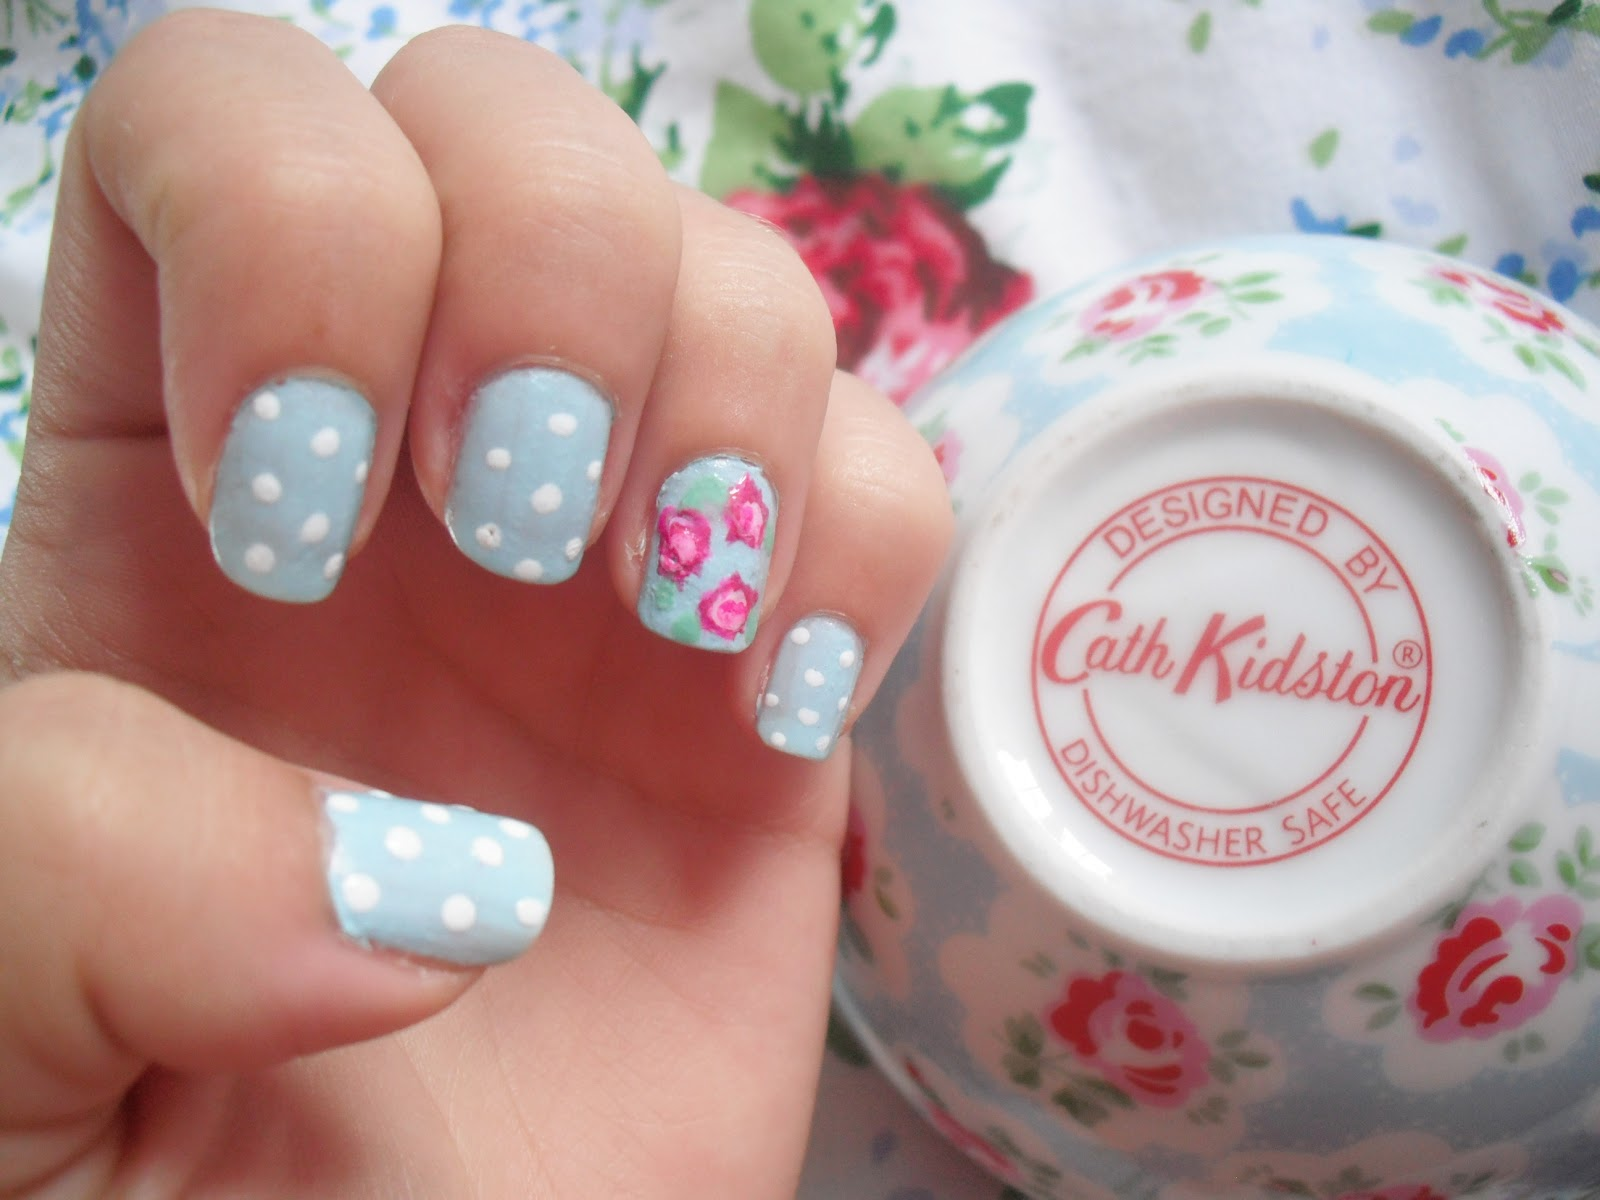 Nail art designs dscf8210 prinsesfo Image collections